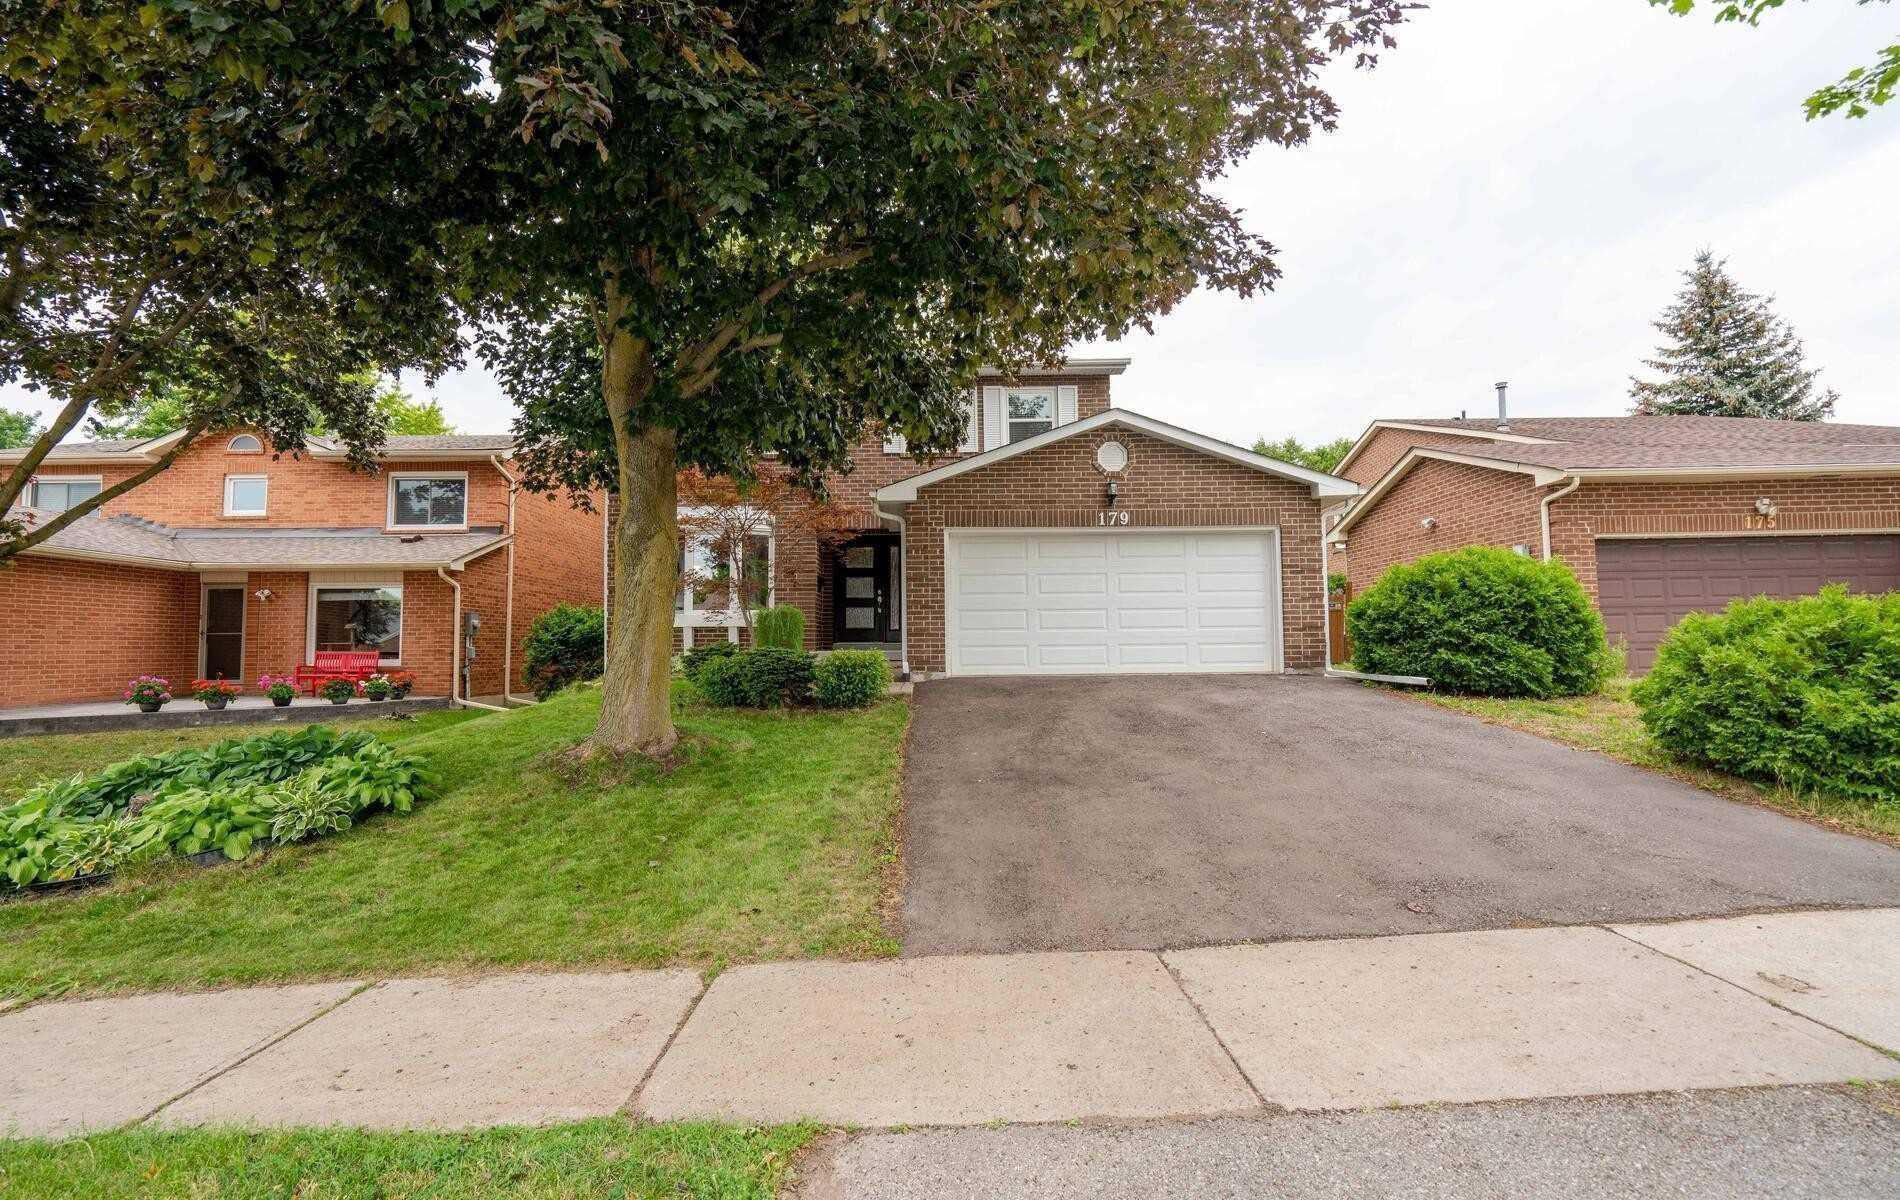 Detached house For Lease In Newmarket